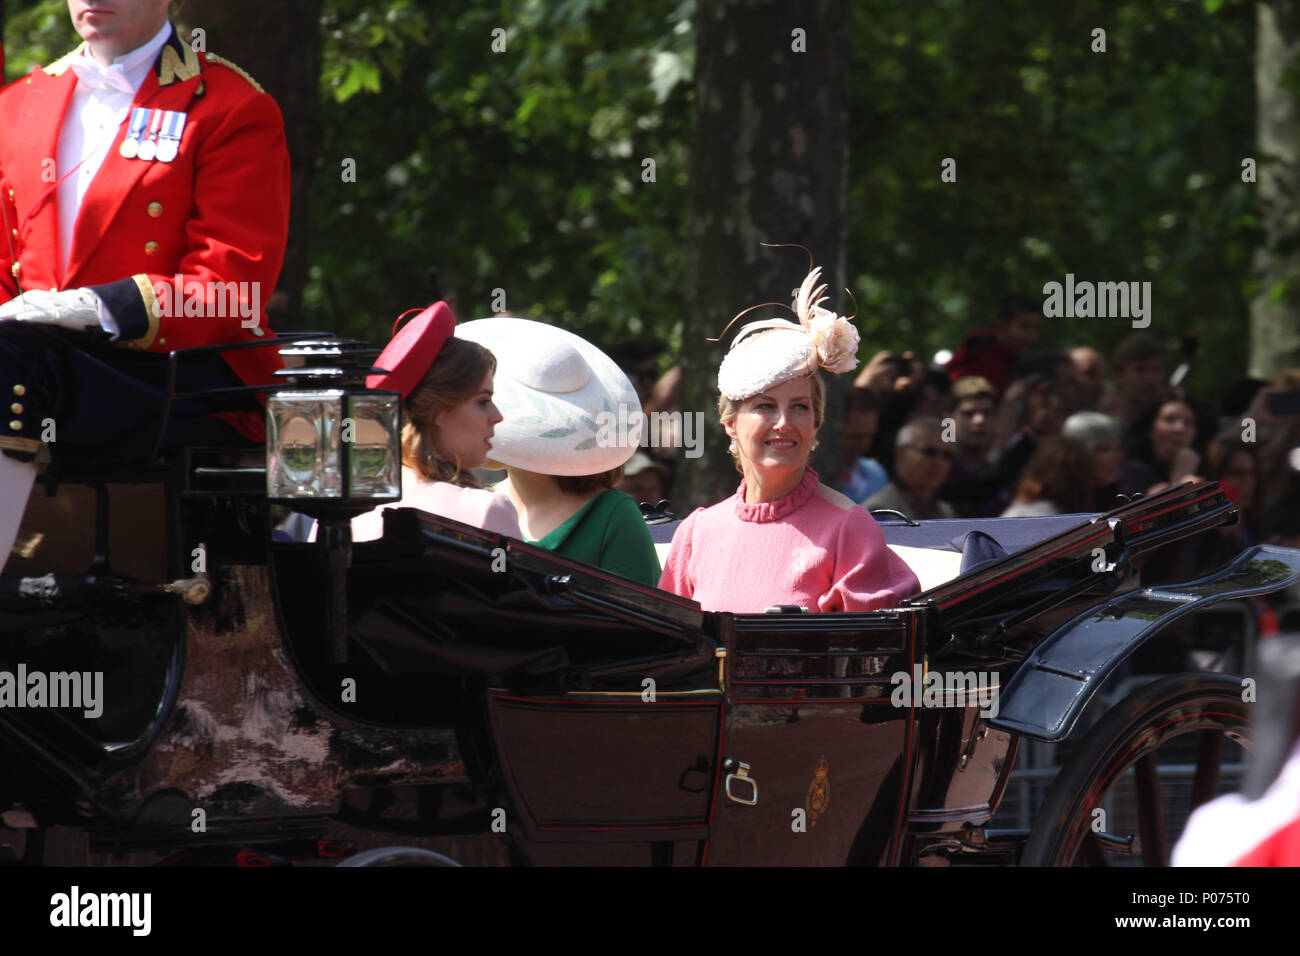 London, UK 9 June 2018: Members of the Royal Family seen on a horse drawn carriage as they make their way to the Horse Guards Parade Ground on 9 June 2018. Over 1400 parading soldiers, 200 horses and 400 musicians come together each June in a great display of military precision, horsemanship and fanfare to mark The Queen's official birthday. Credit: David Mbiyu/Alamy - Stock Image